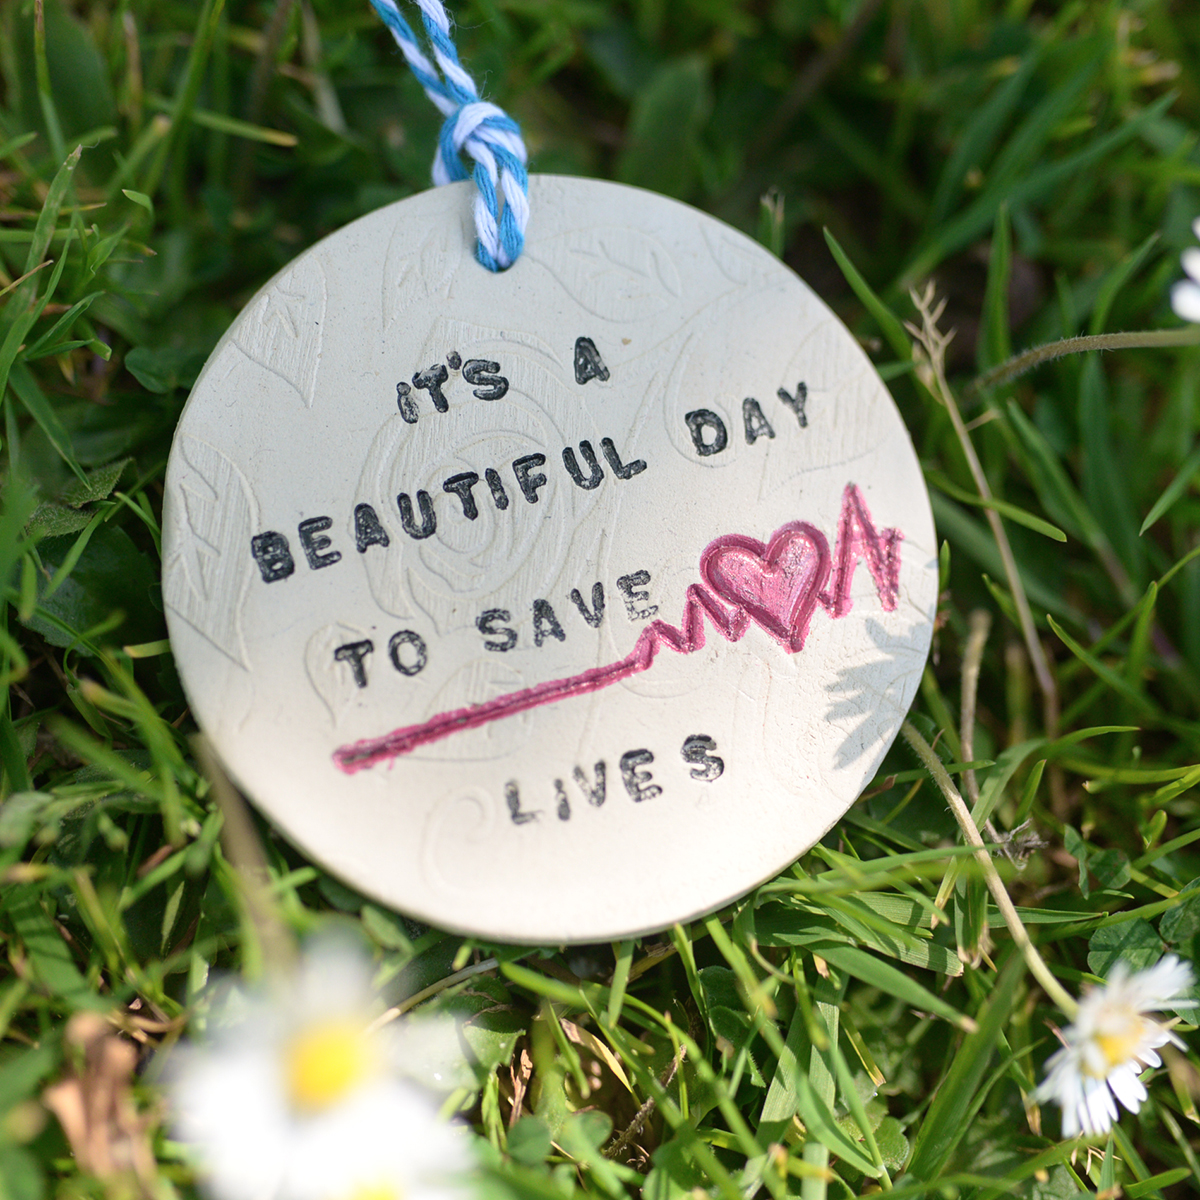 its-a-beautiful-day-to-save-lives